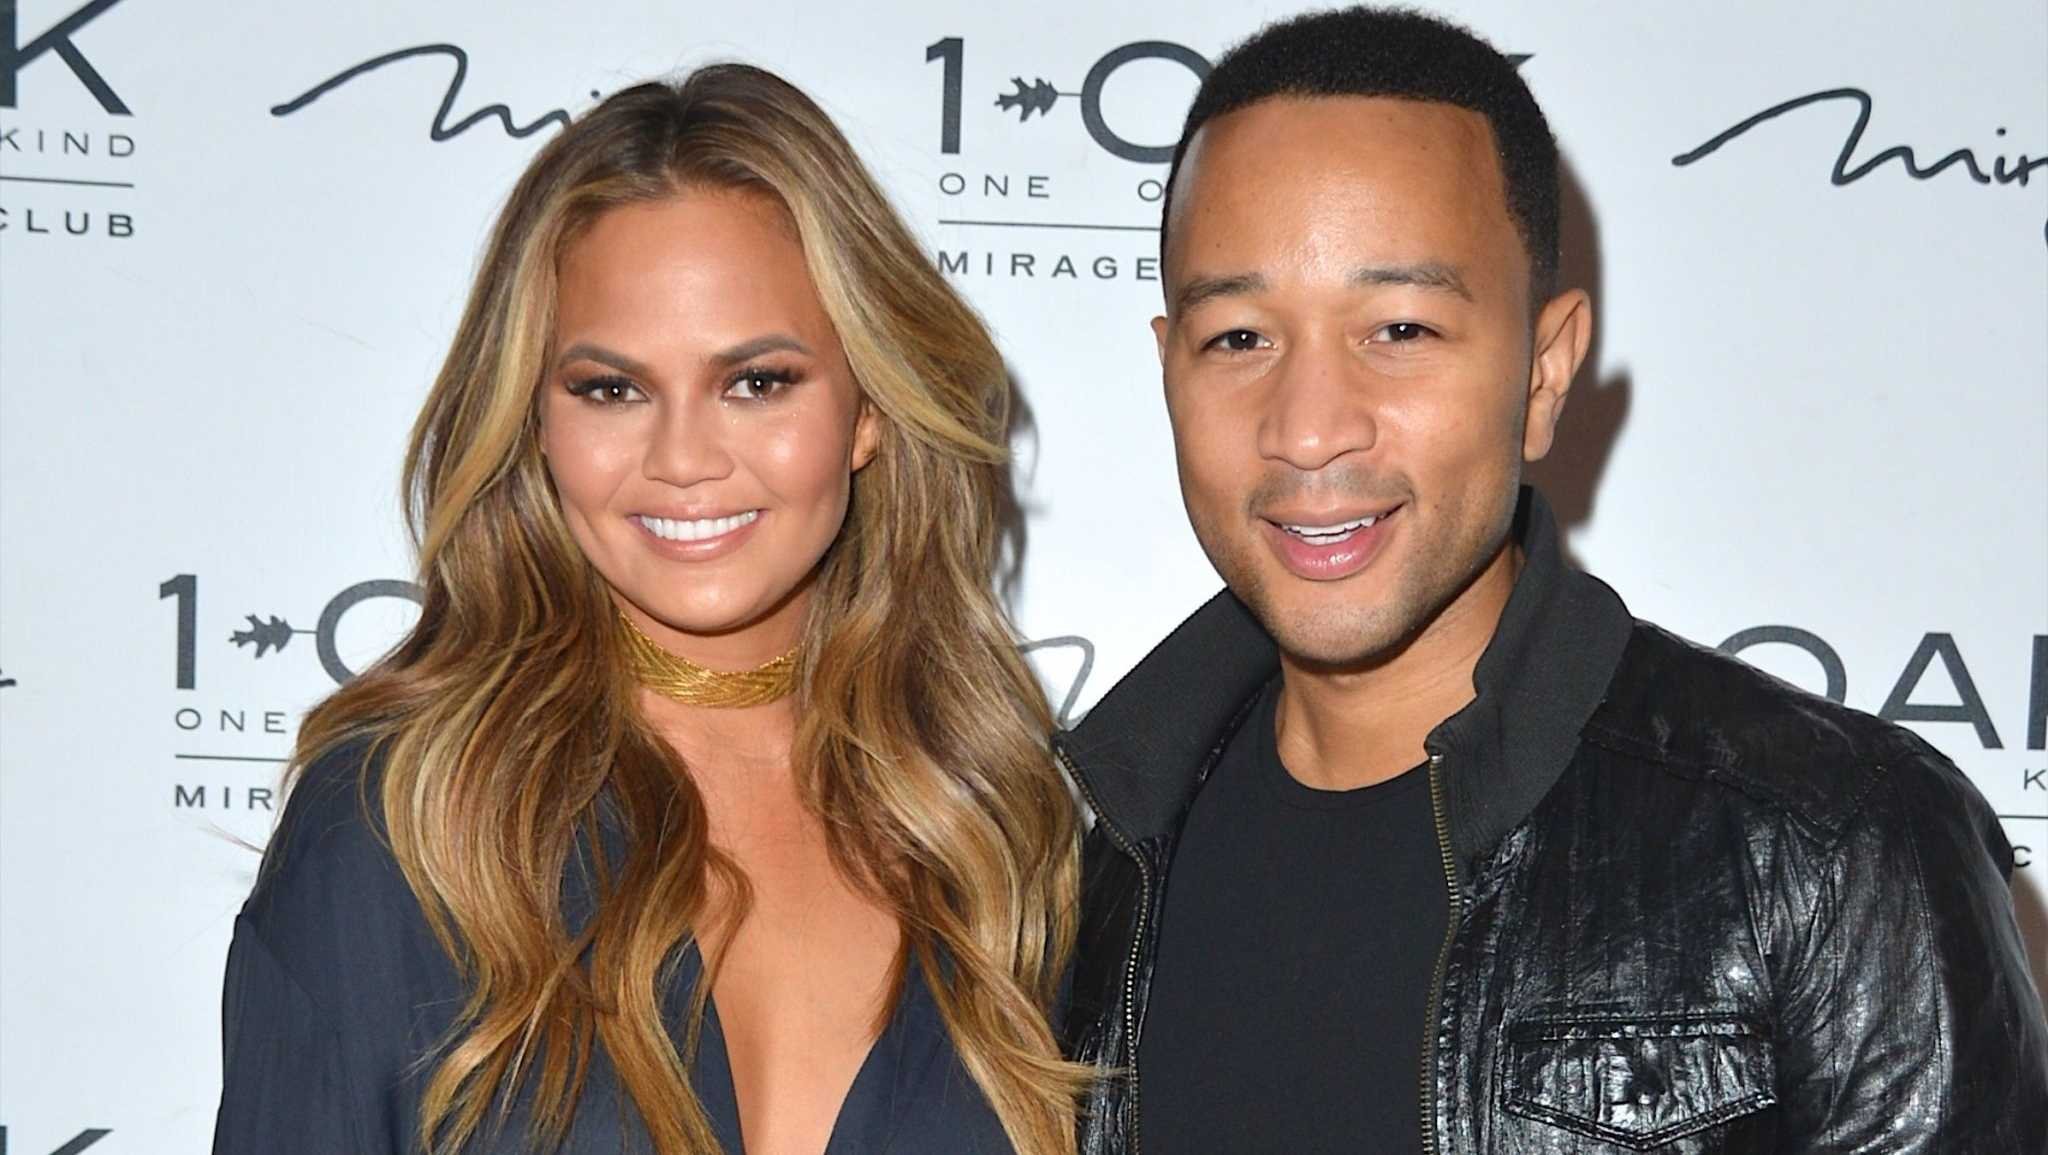 Supermodel Chrissy Teigen and musician John Legend tied the knot in Como, Italy, in September 2013.